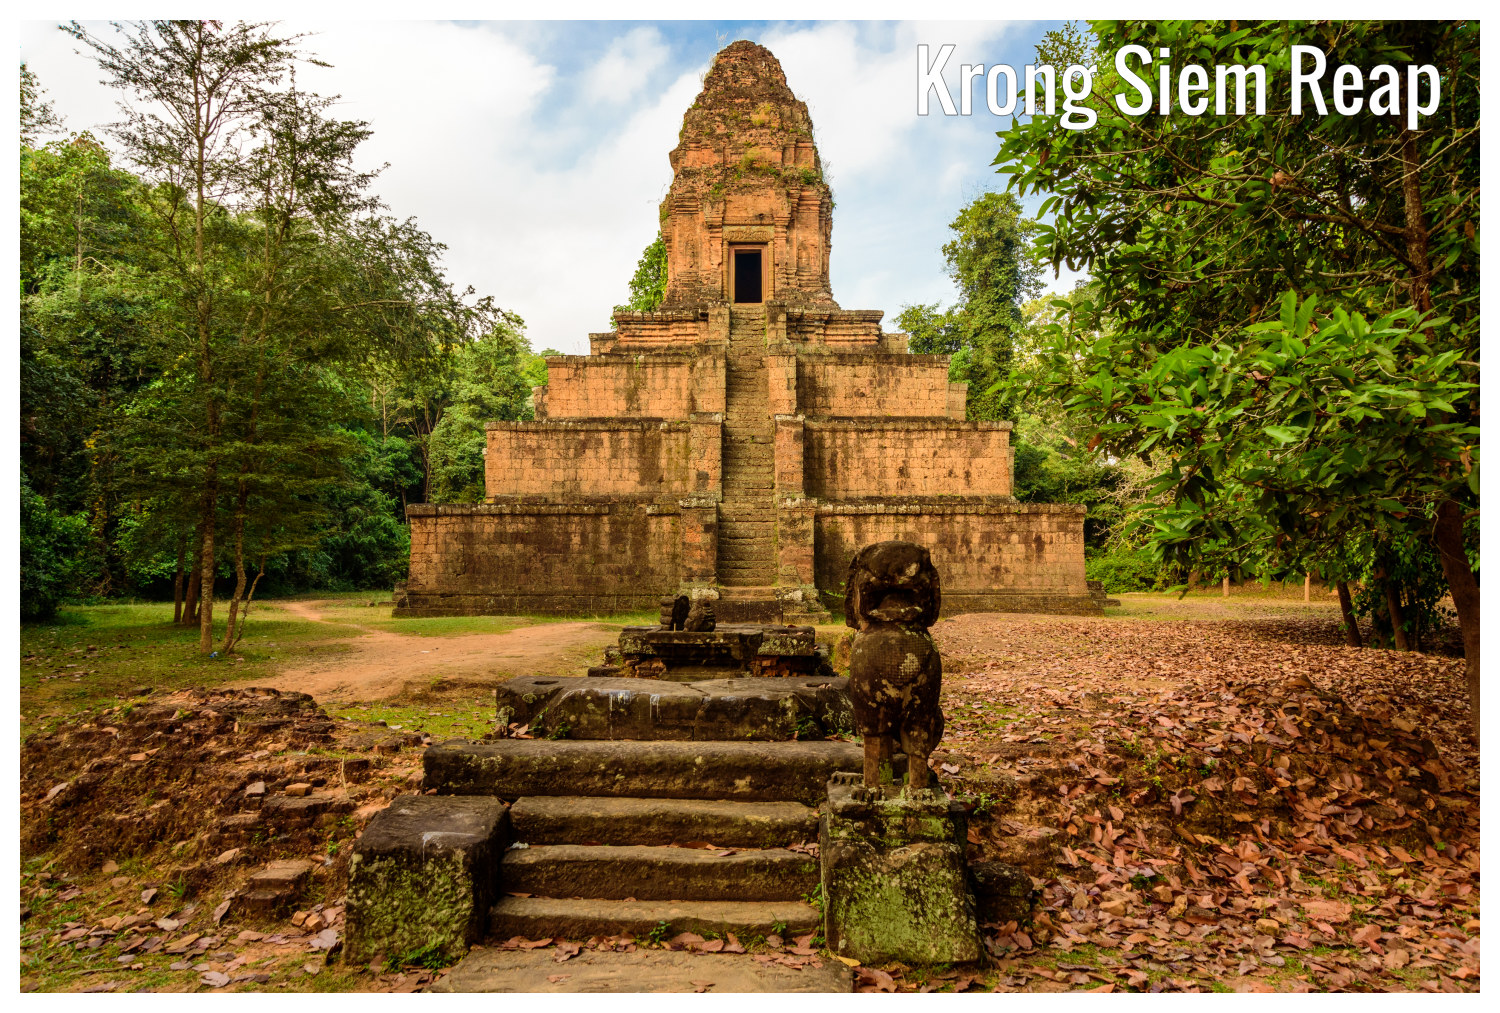 Krong Siem Reap. Cambodia - Detailed climate information and monthly weather forecast | Weather Atlas